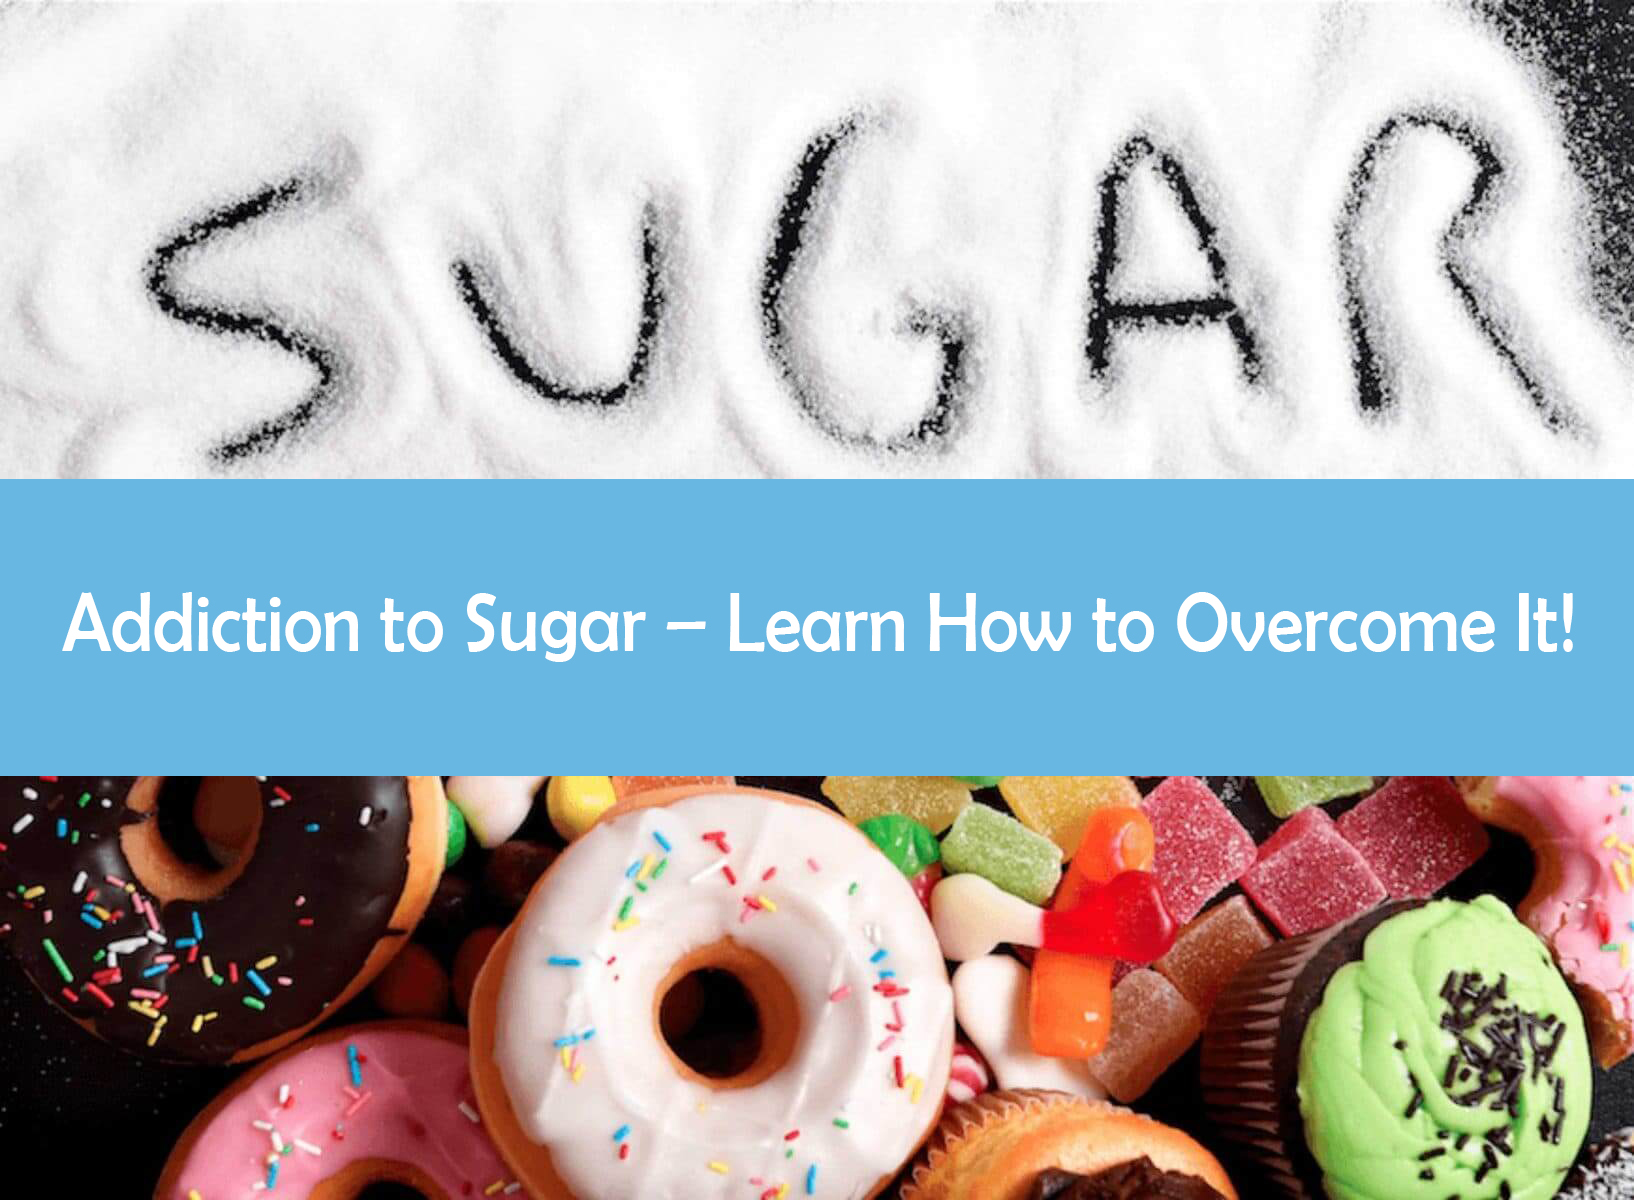 Addiction to Sugar – Learn How to Overcome It!